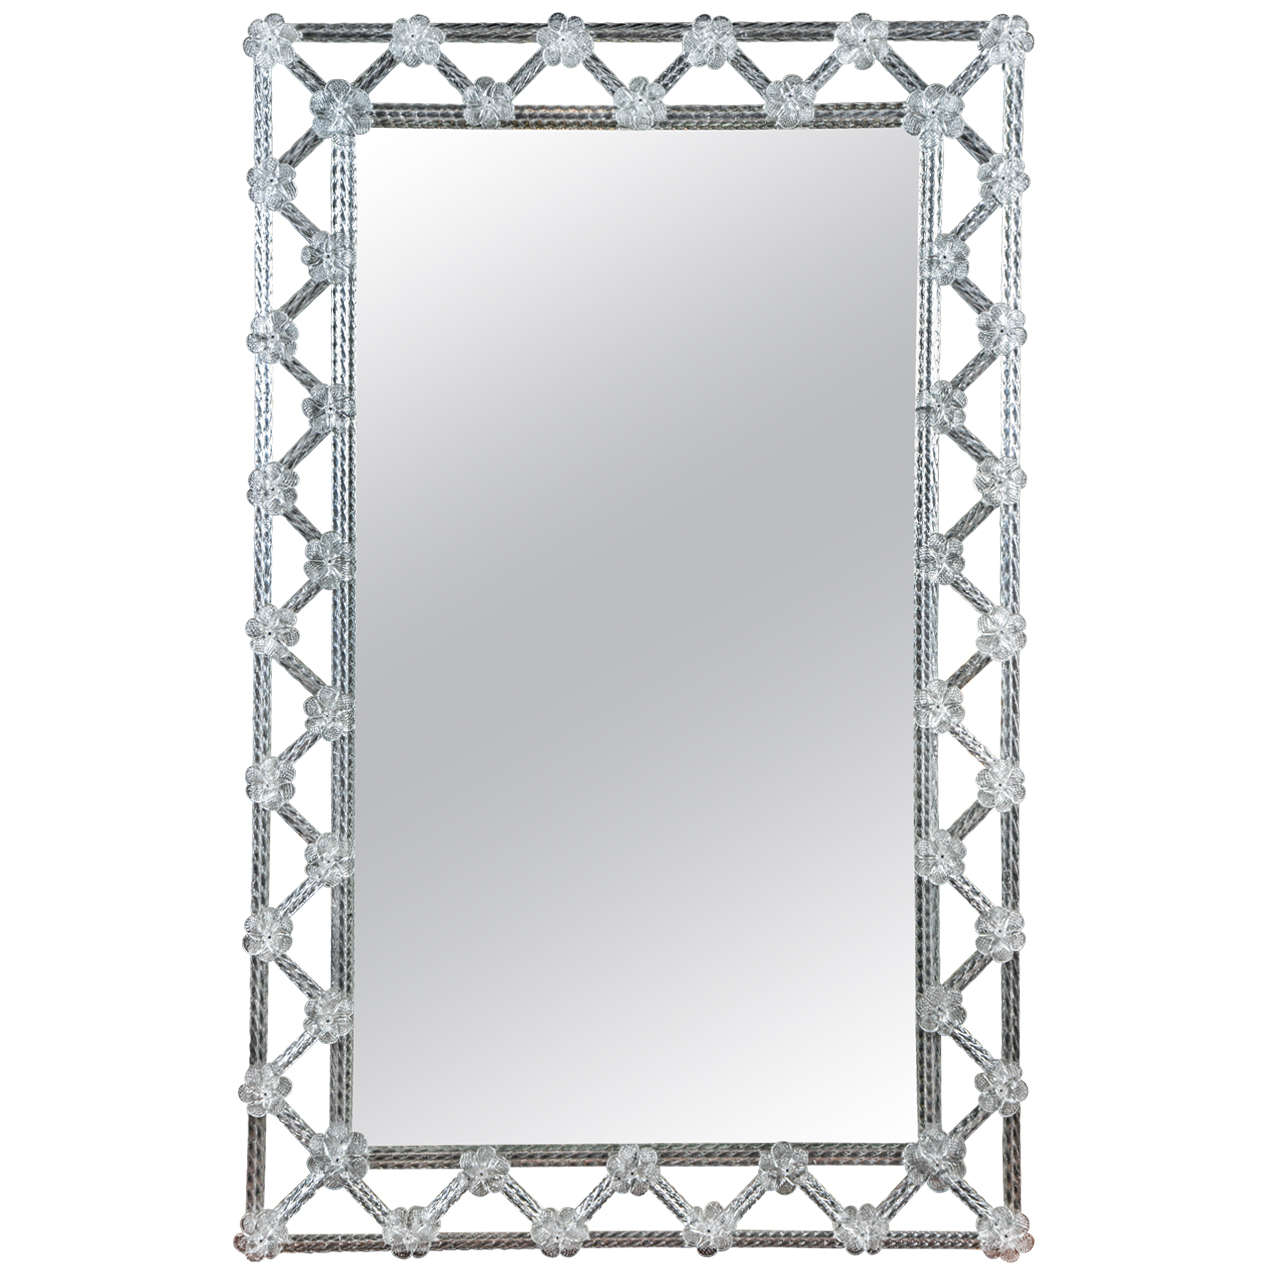 Venetian Mirror with Border in Murano Glass at 1stdibs